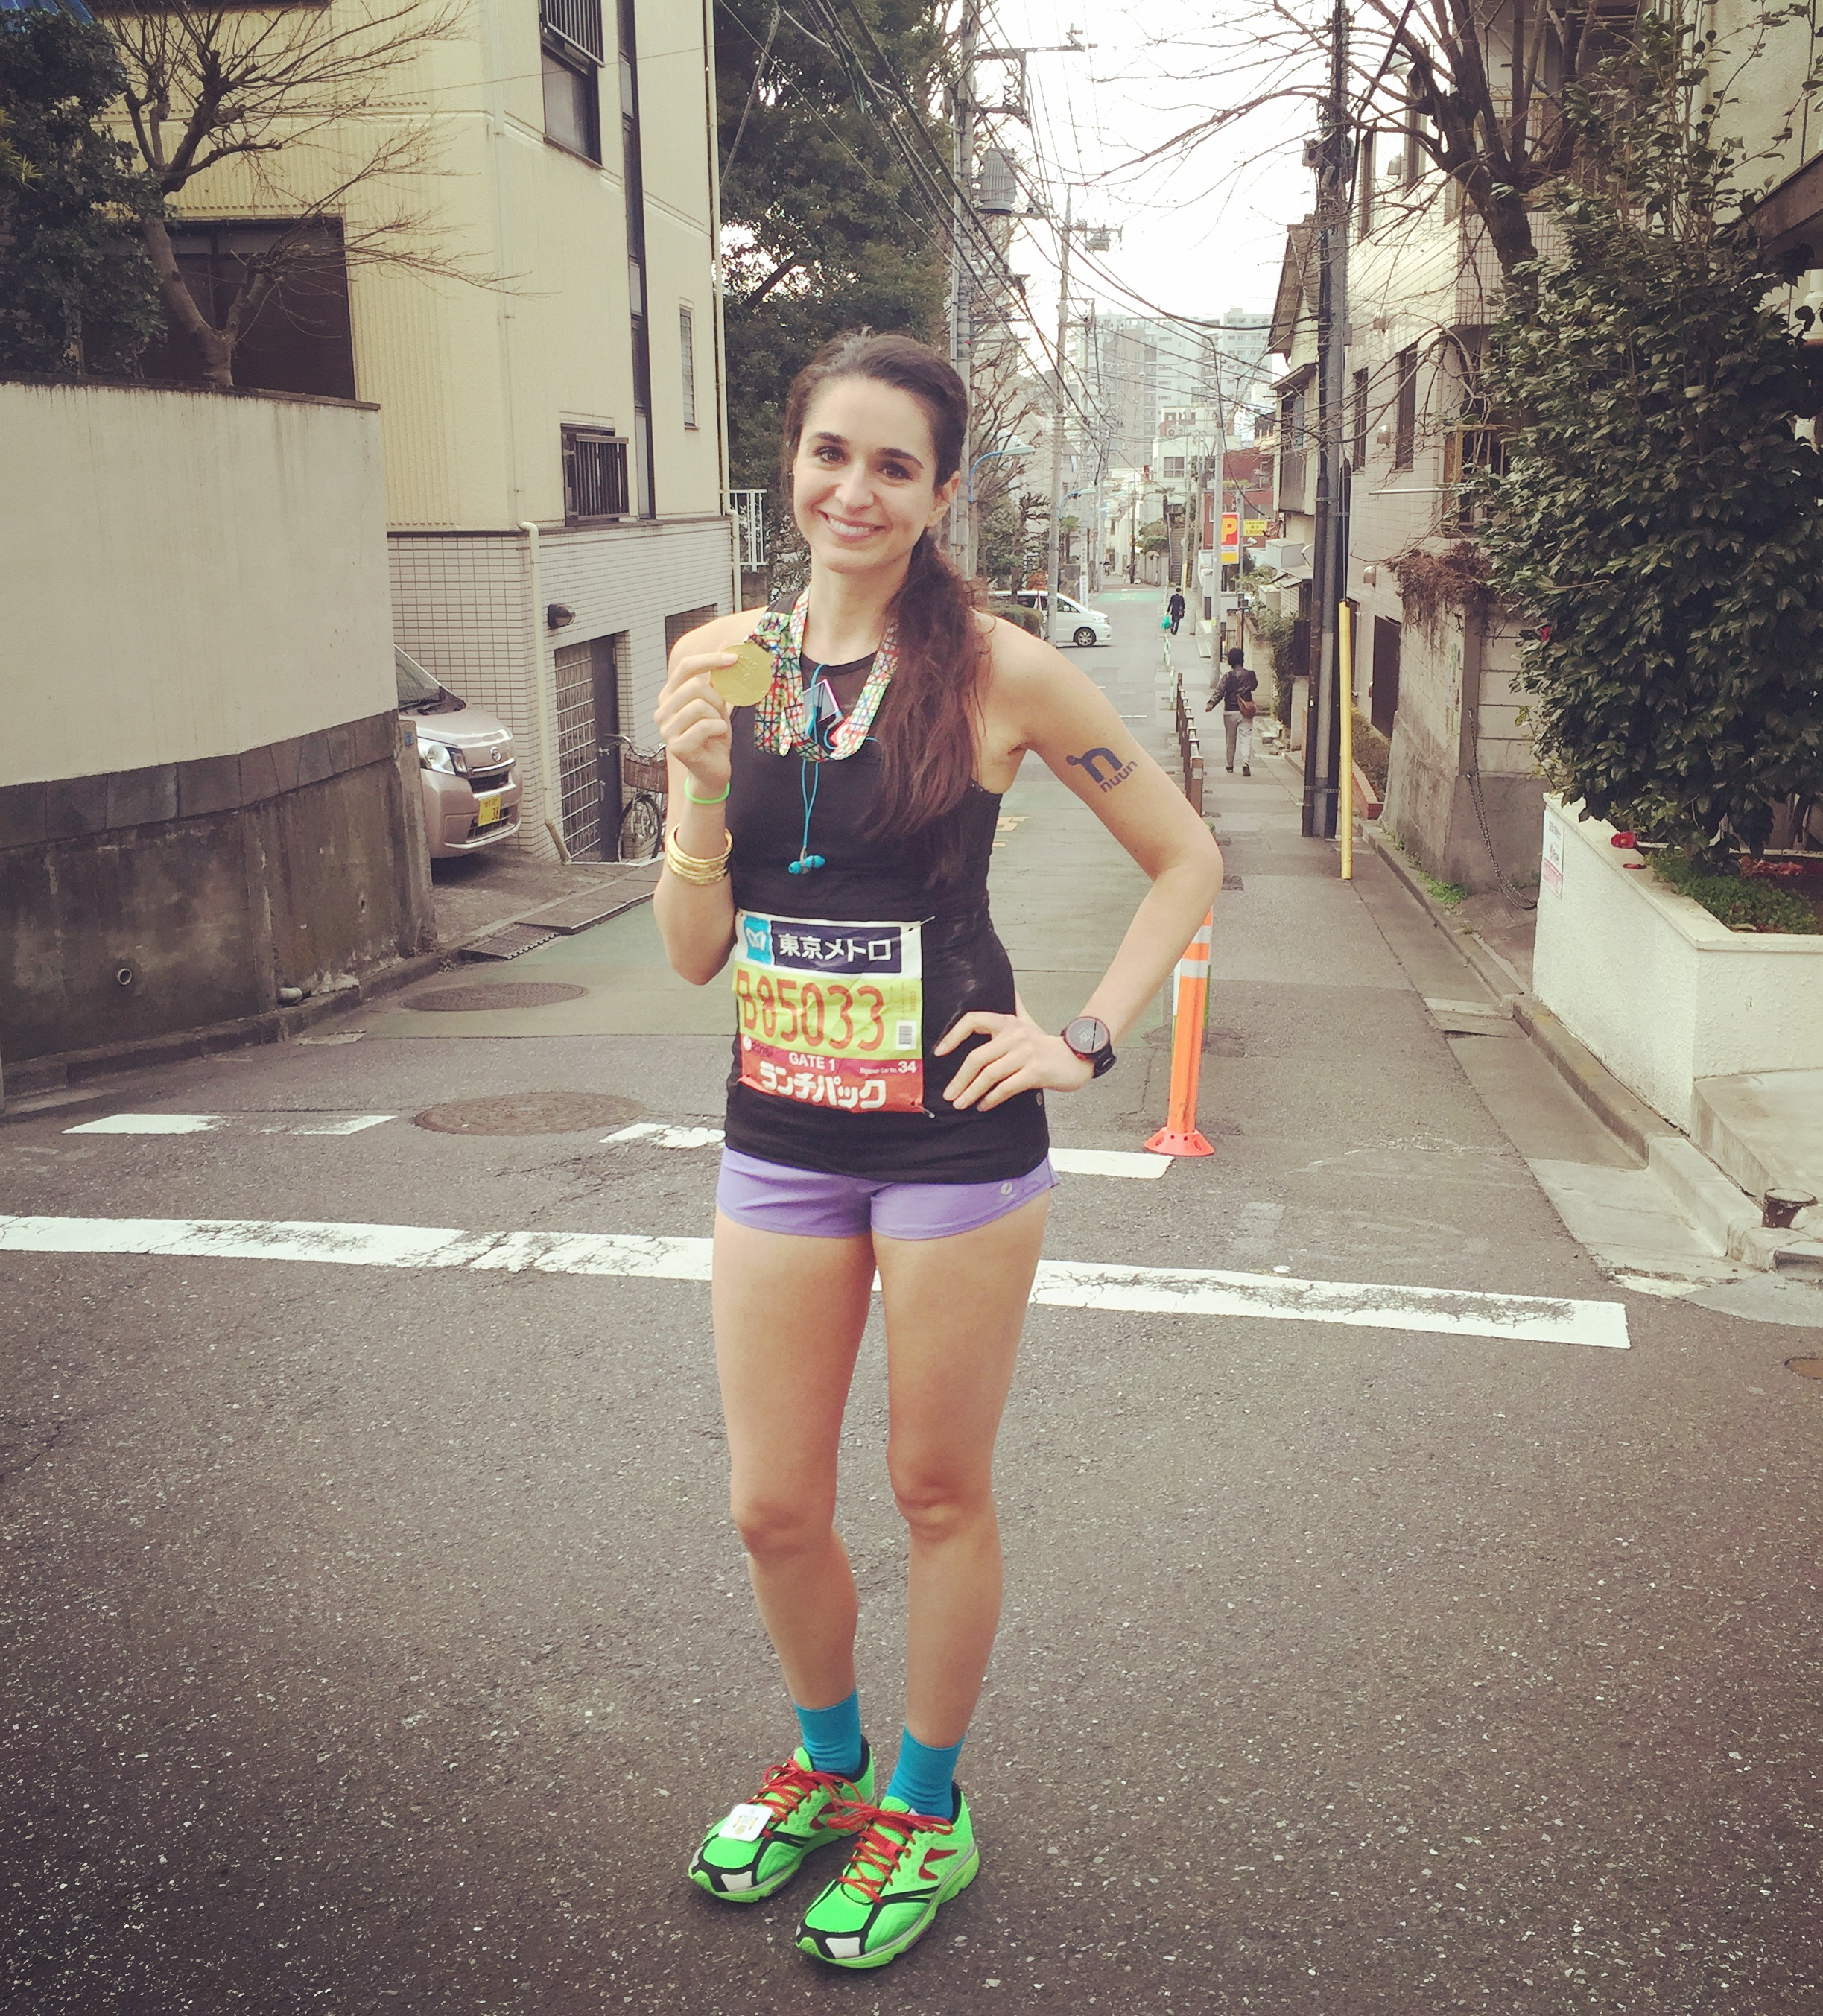 Marathon #6 of 6: TOKYOOOOO - too much time change + hills at end + long course= unsatisfying results (but with the knowledge that on a better day things could have been different! ;-)